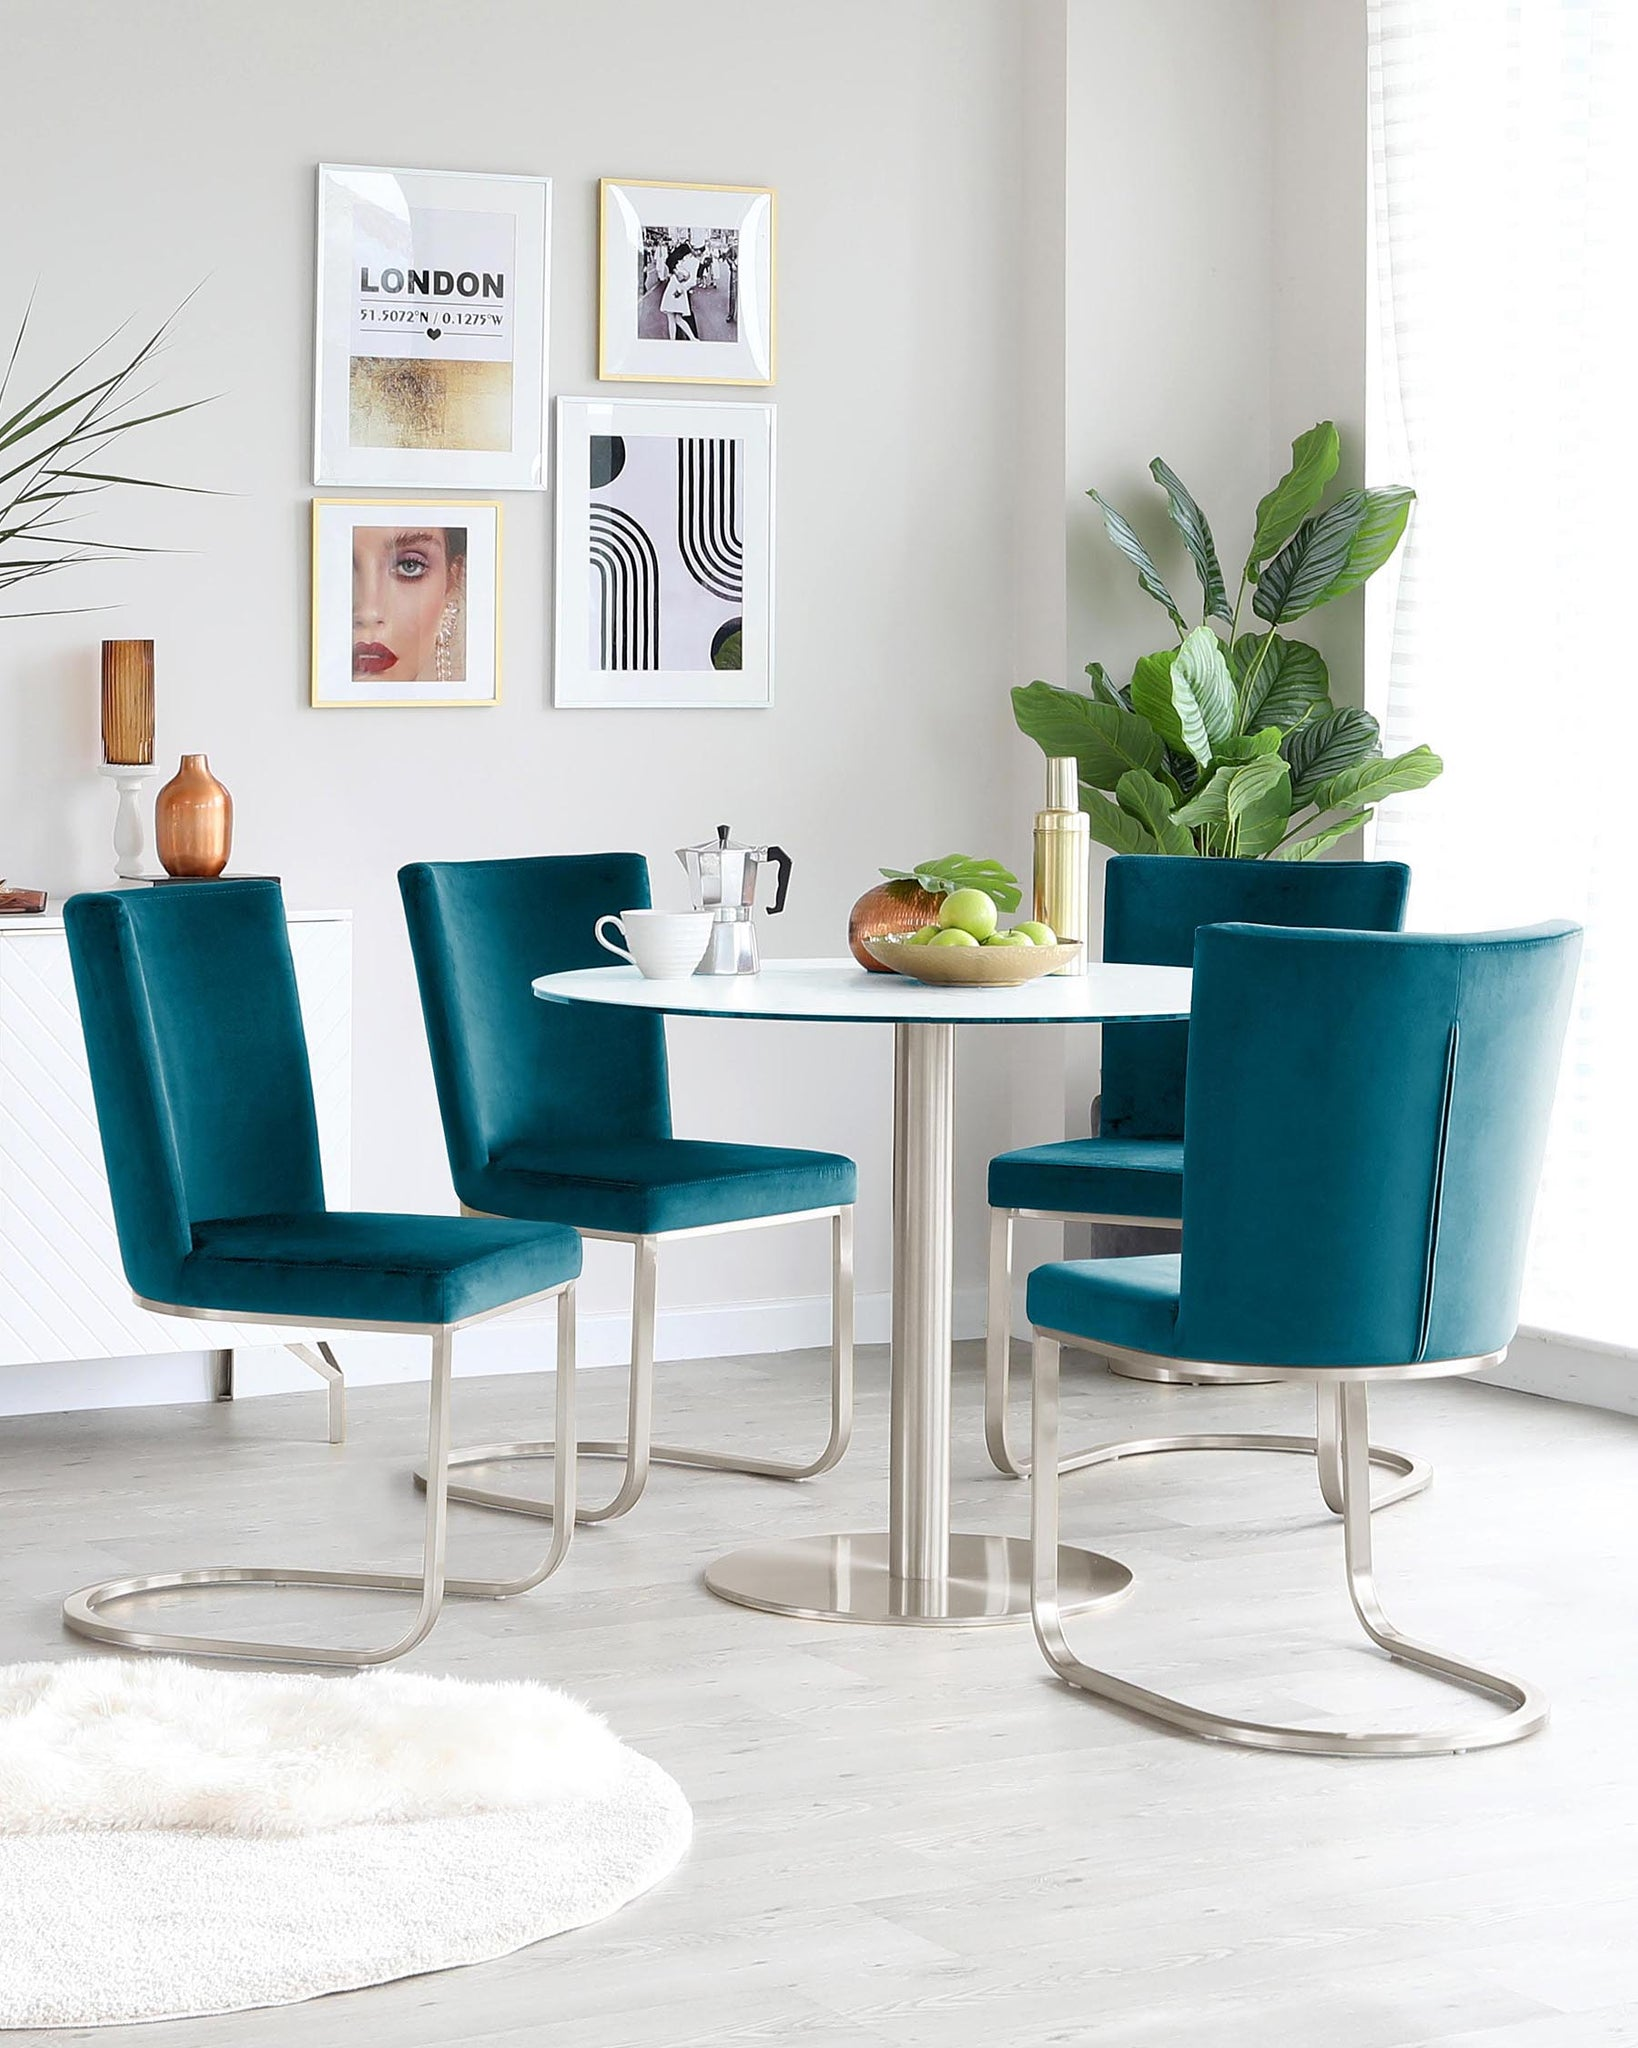 Romeo Stainless Steel Pedestal and Form Velvet Chair Set